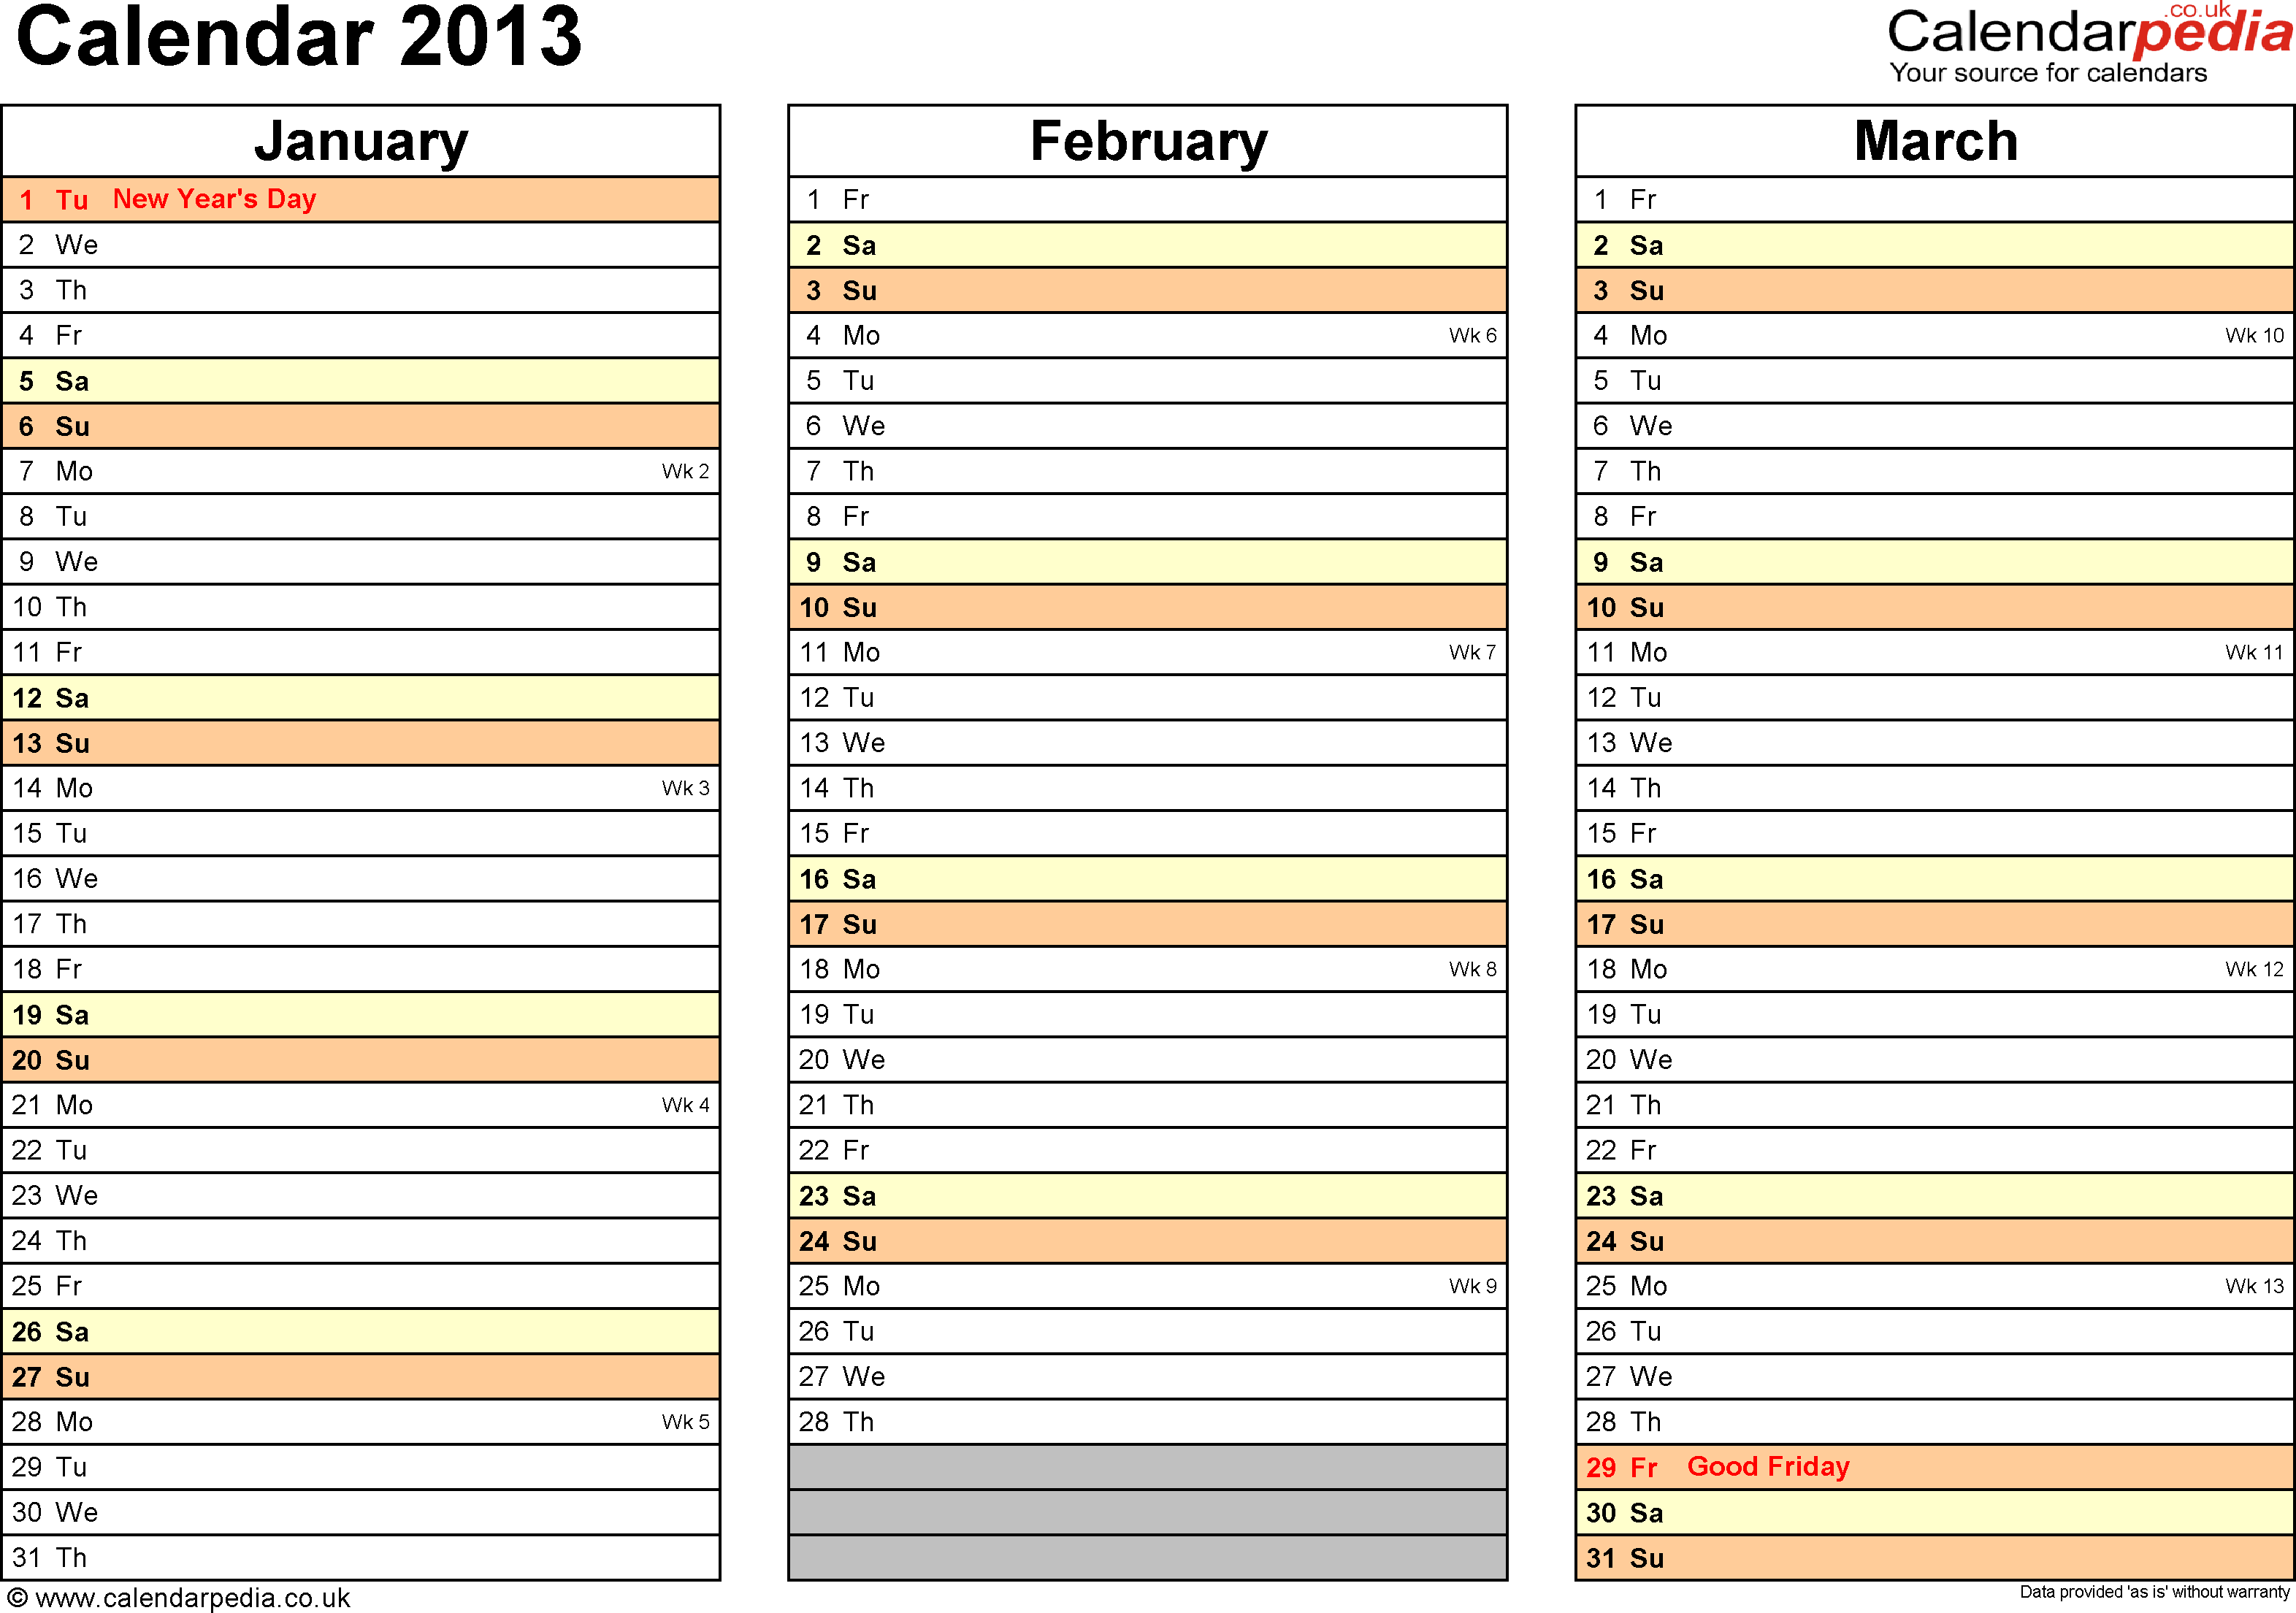 Template 6: Yearly calendar 2013 as Excel template, landscape orientation, 4 pages, months horizontally, days vertically, with UK bank holidays and week numbers